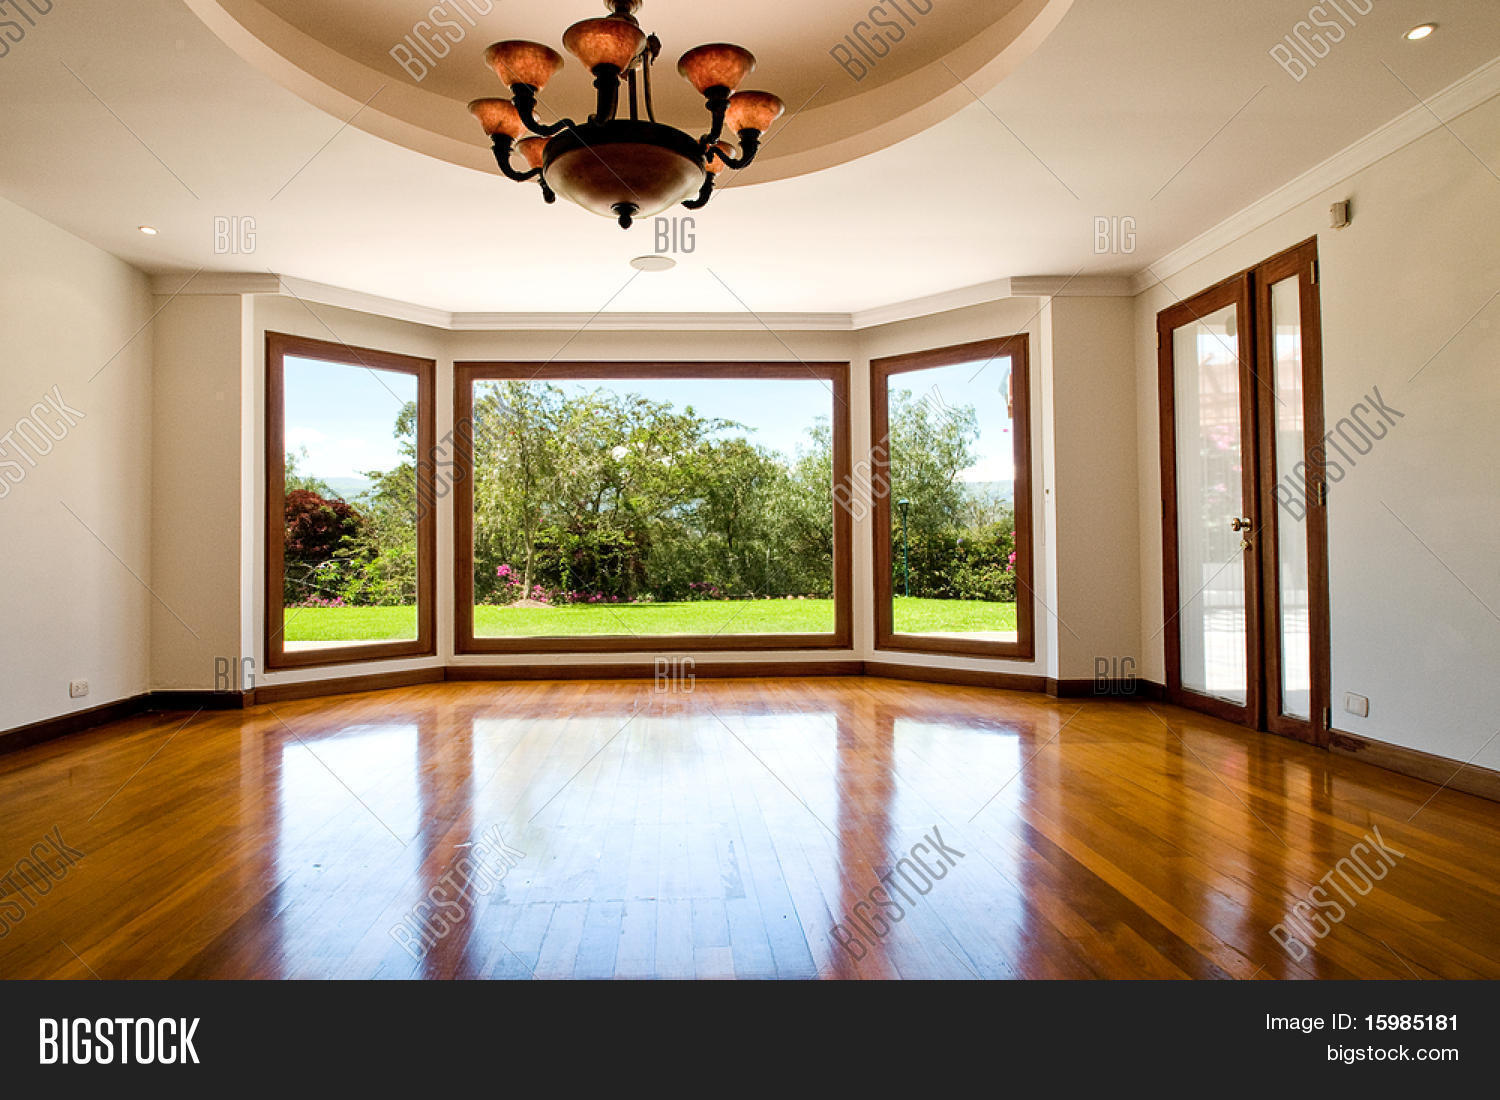 apartment,architecture,background,big,ceiling,city,classical,contemporary,country,design,door,elegant,empty,empty room,estate,exterior,floor,frame,glass,grass,home,house,indoor,interior,lamp,landscape,large,light,line,living,living room,livingroom,living room interior,living room wall,luxury,modern,modern living room,natural,nature,nobody,open,real,room,service,shelf,space,style,traditional,trees,wall,white,window,wood,wooden